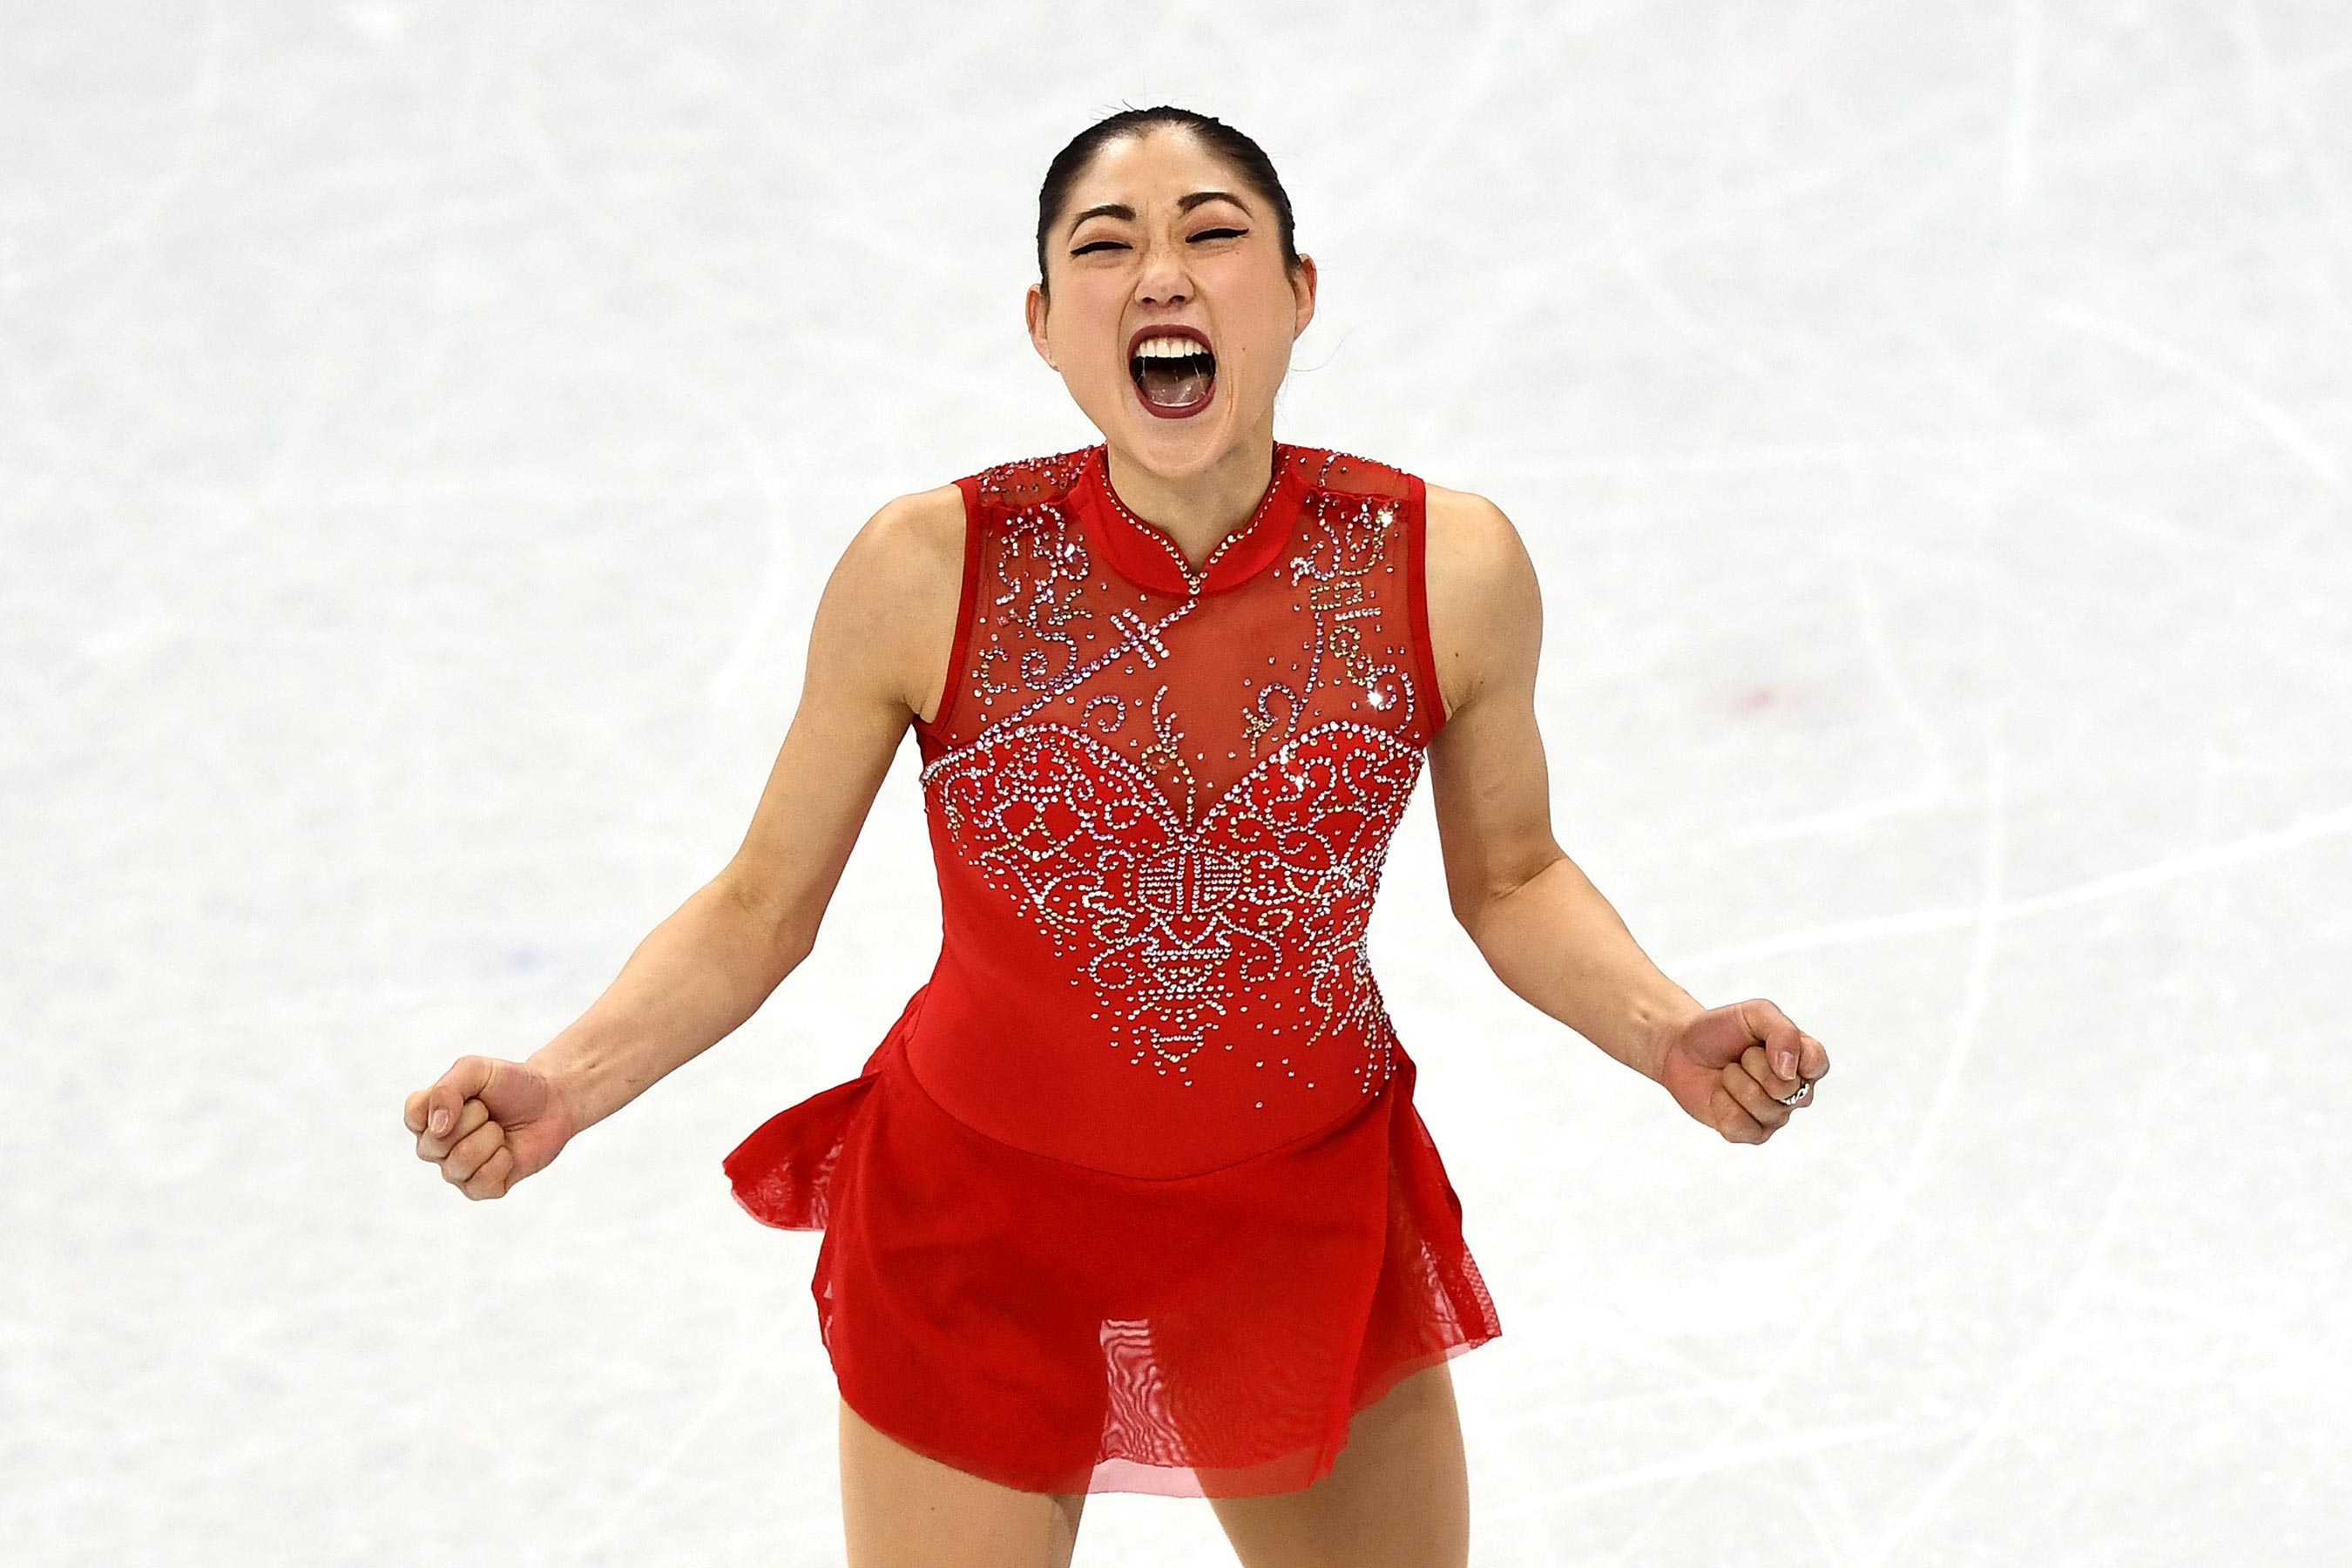 Olympics: Mirai Nagasu's triple axel celebrated by celebs, skaters